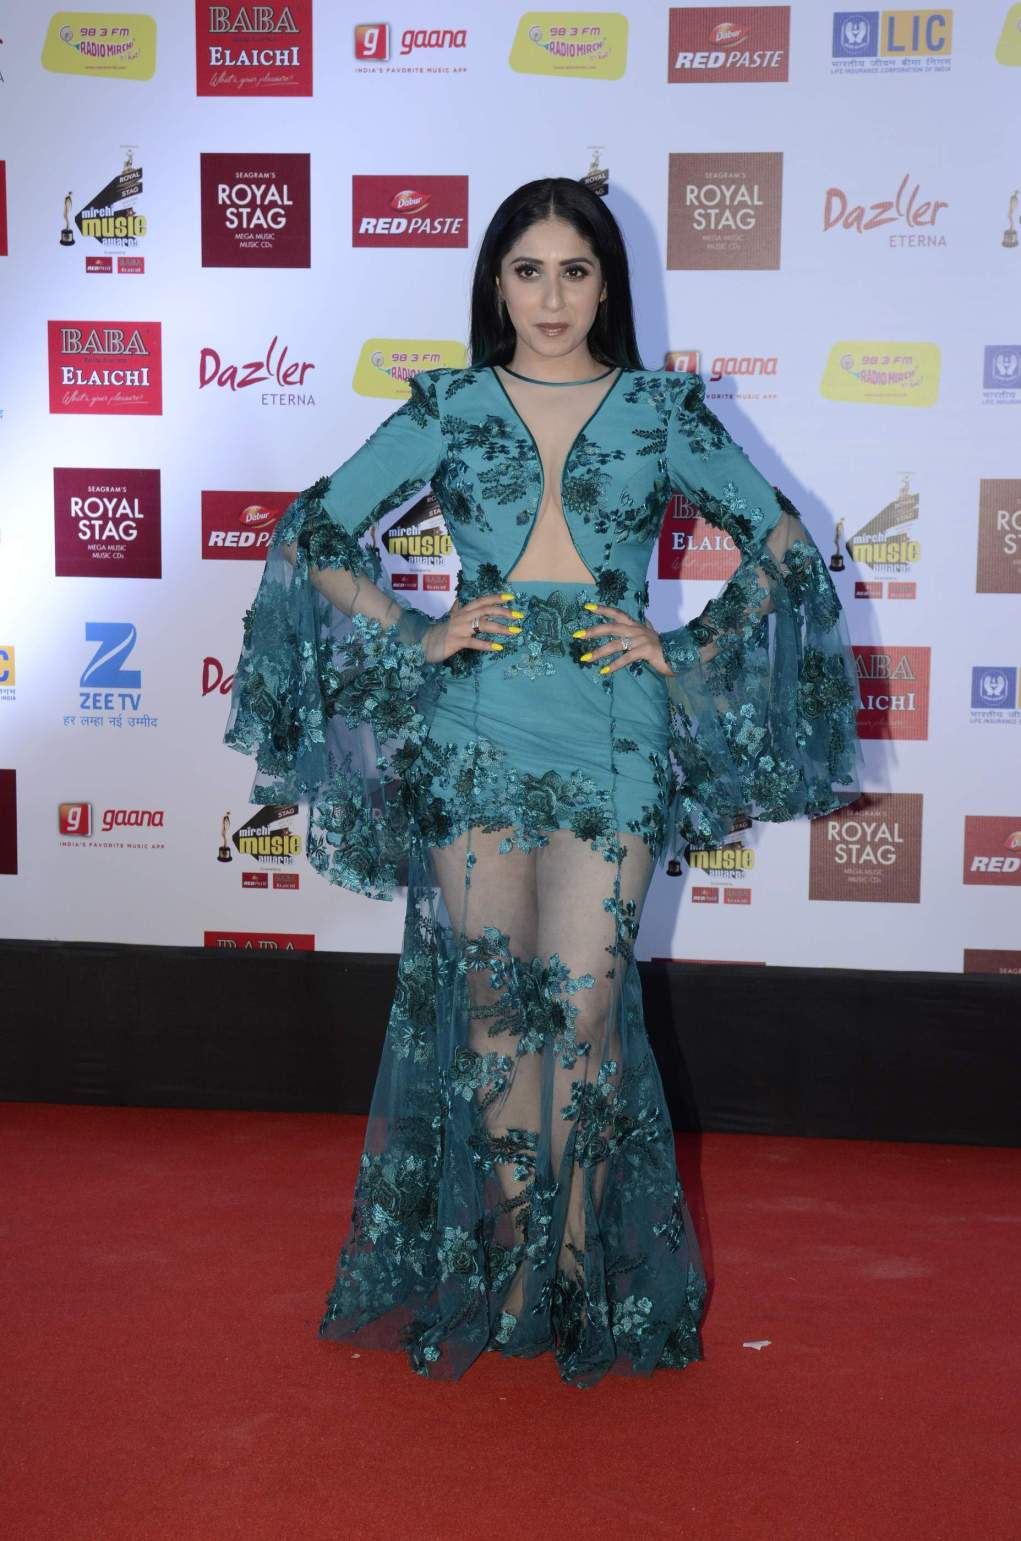 mirchi music HOT Celebs Dazzle At Mirchi Music Awards Event | Models | Actresses Radio Mirchi Awards Red Carpet 7